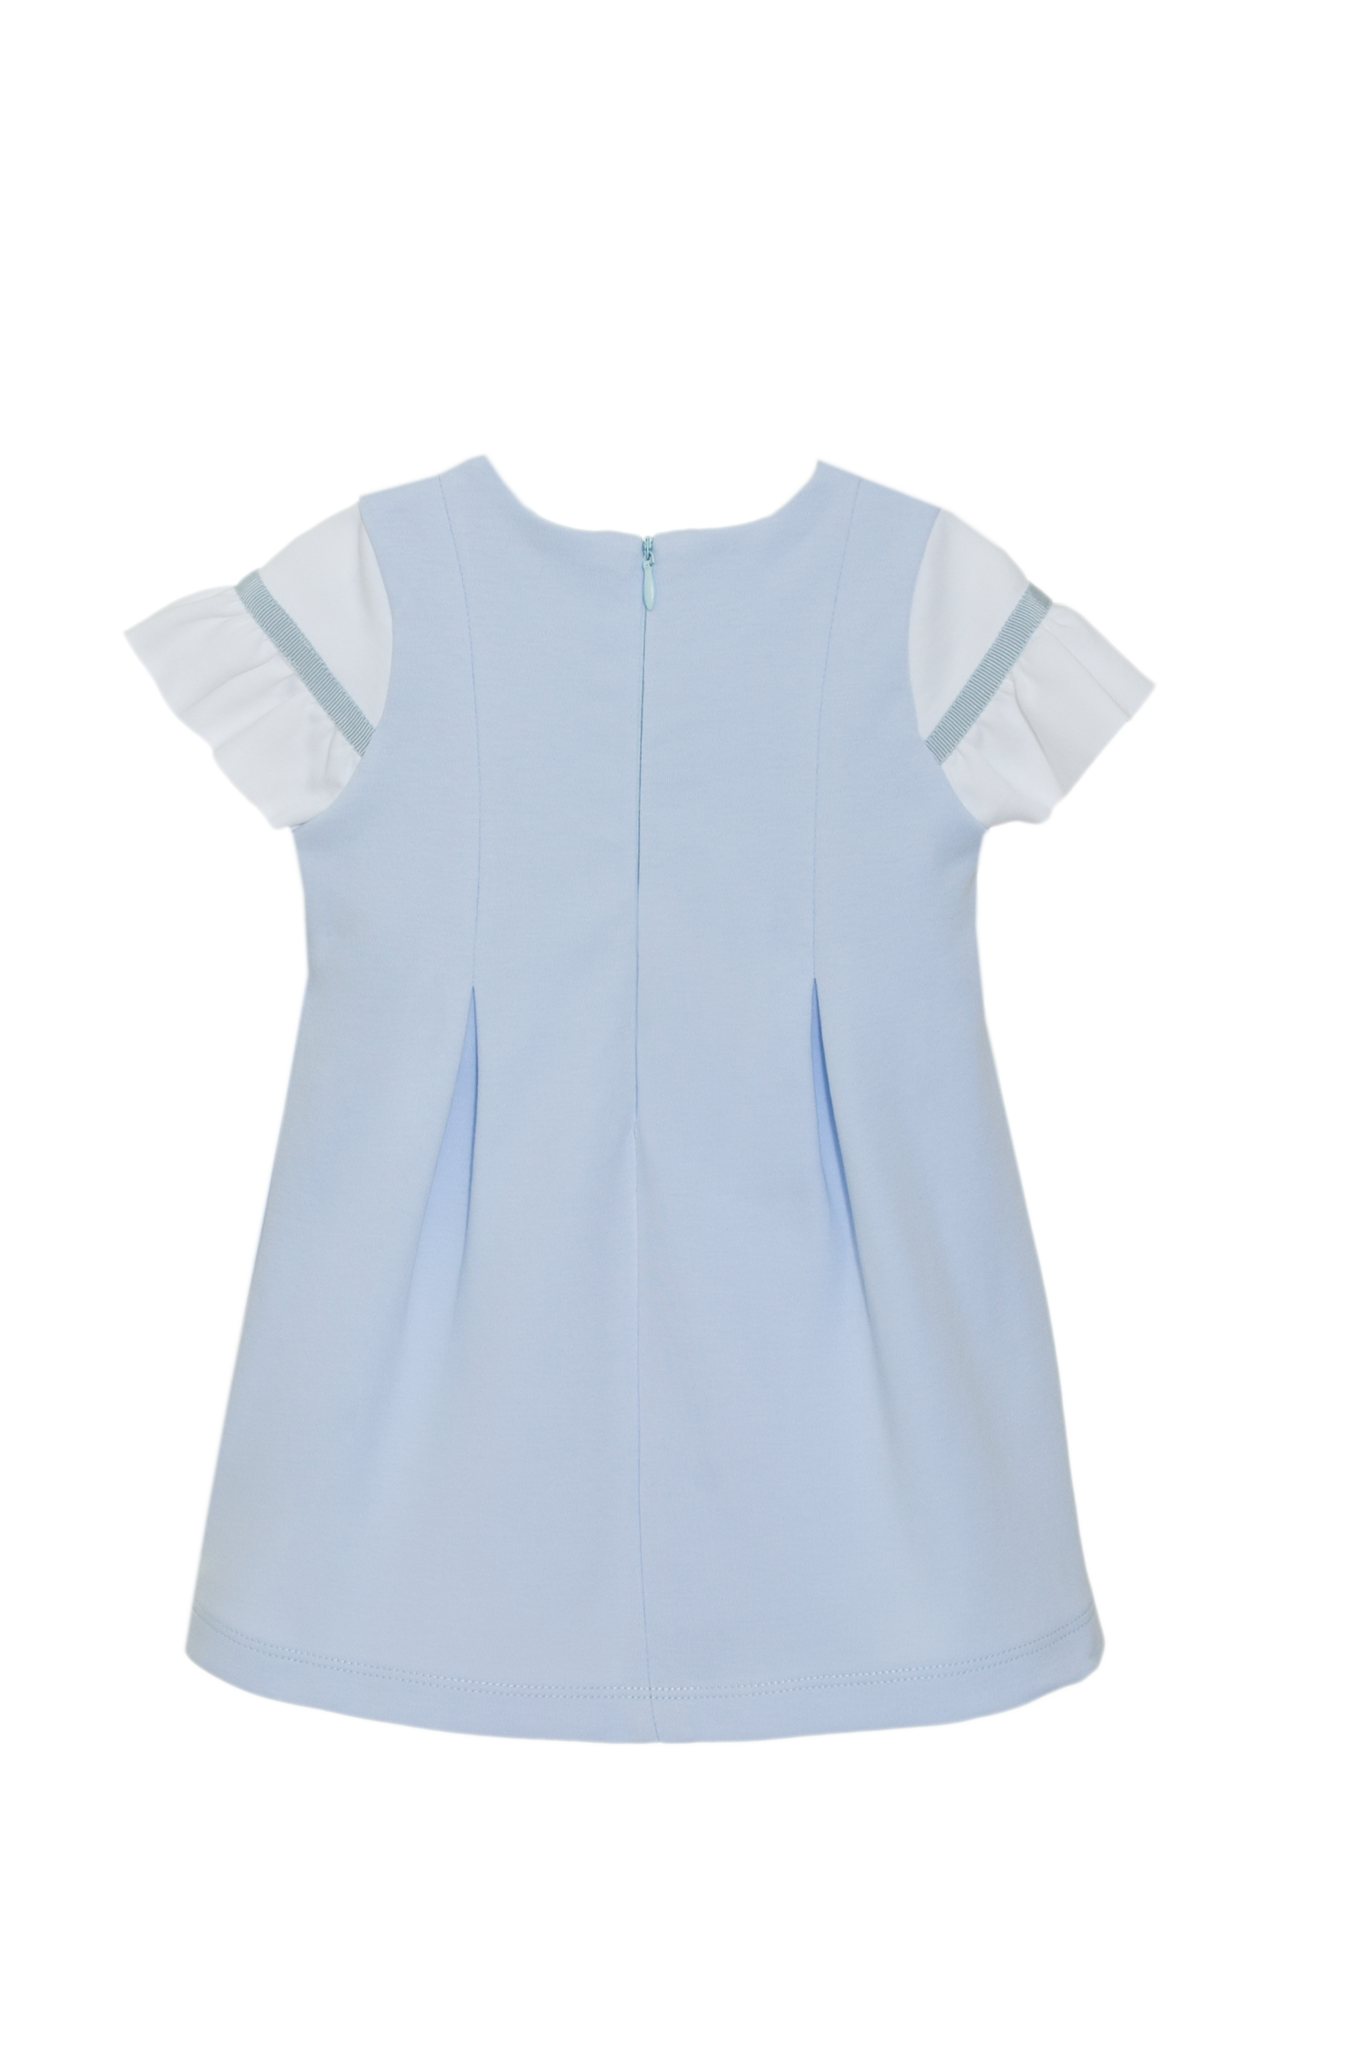 Patachou Patachou Cotton Chest Frill Dress 3229 S21